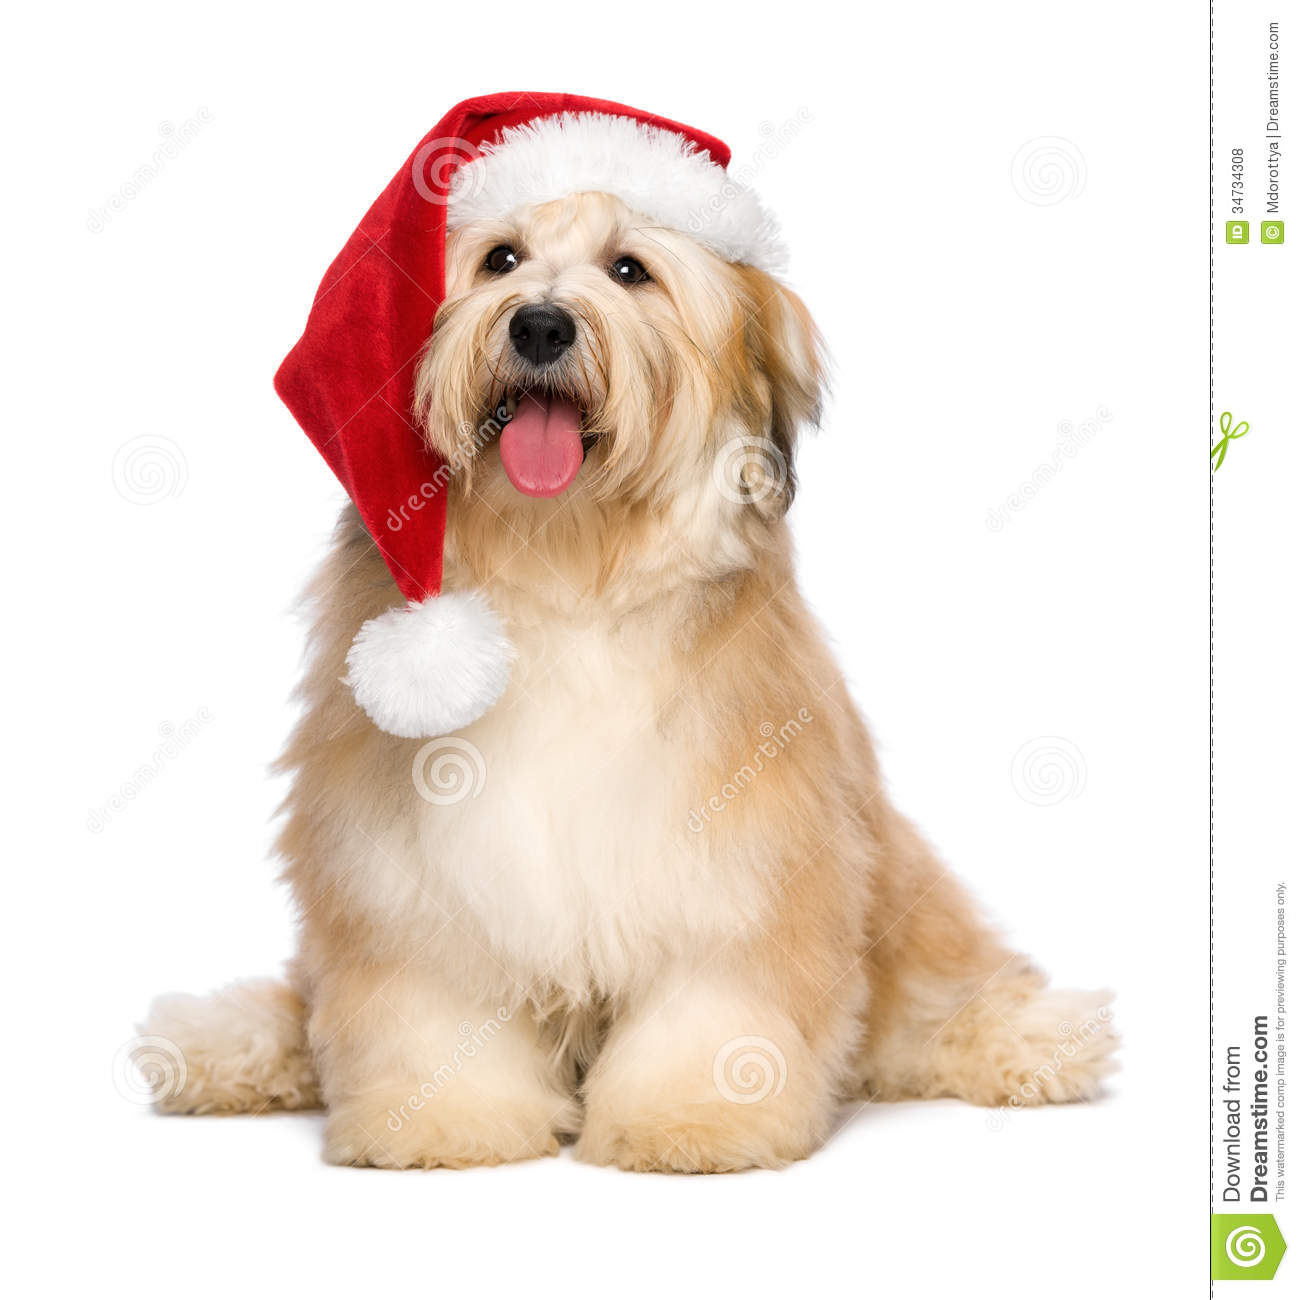 Cute reddish Christmas Havanese puppy dog with a Santa hat